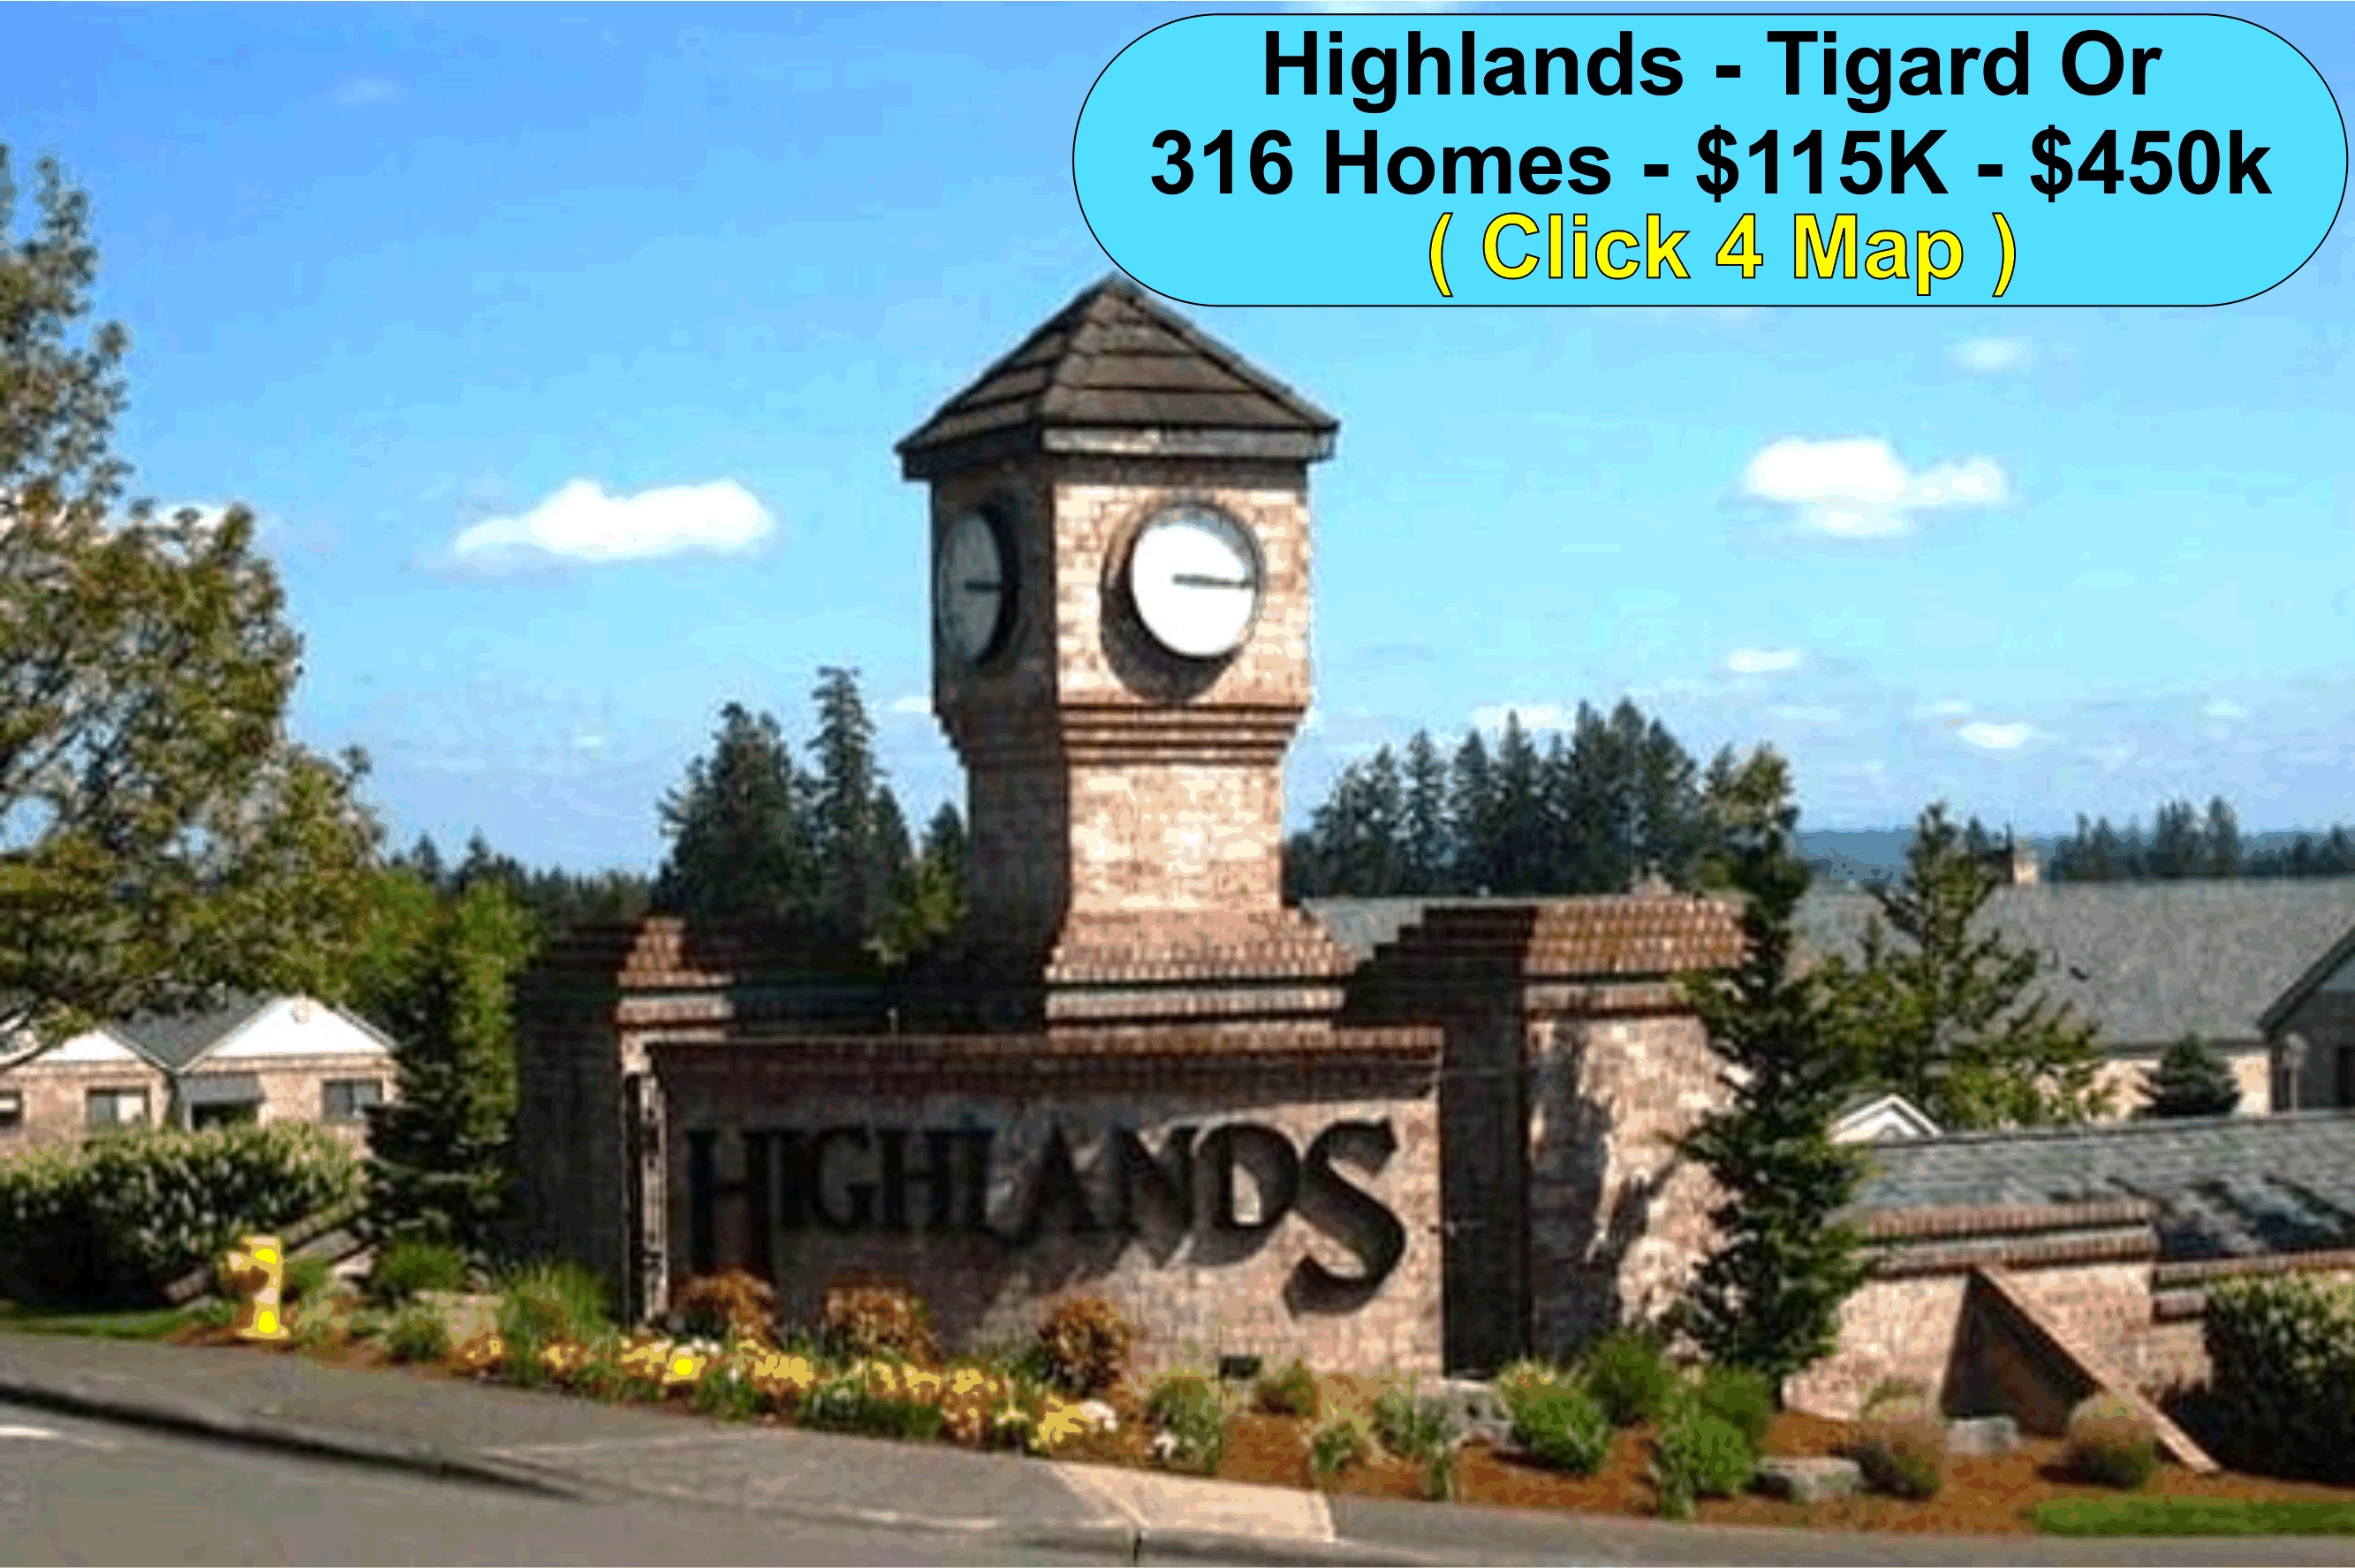 +55 Highlands